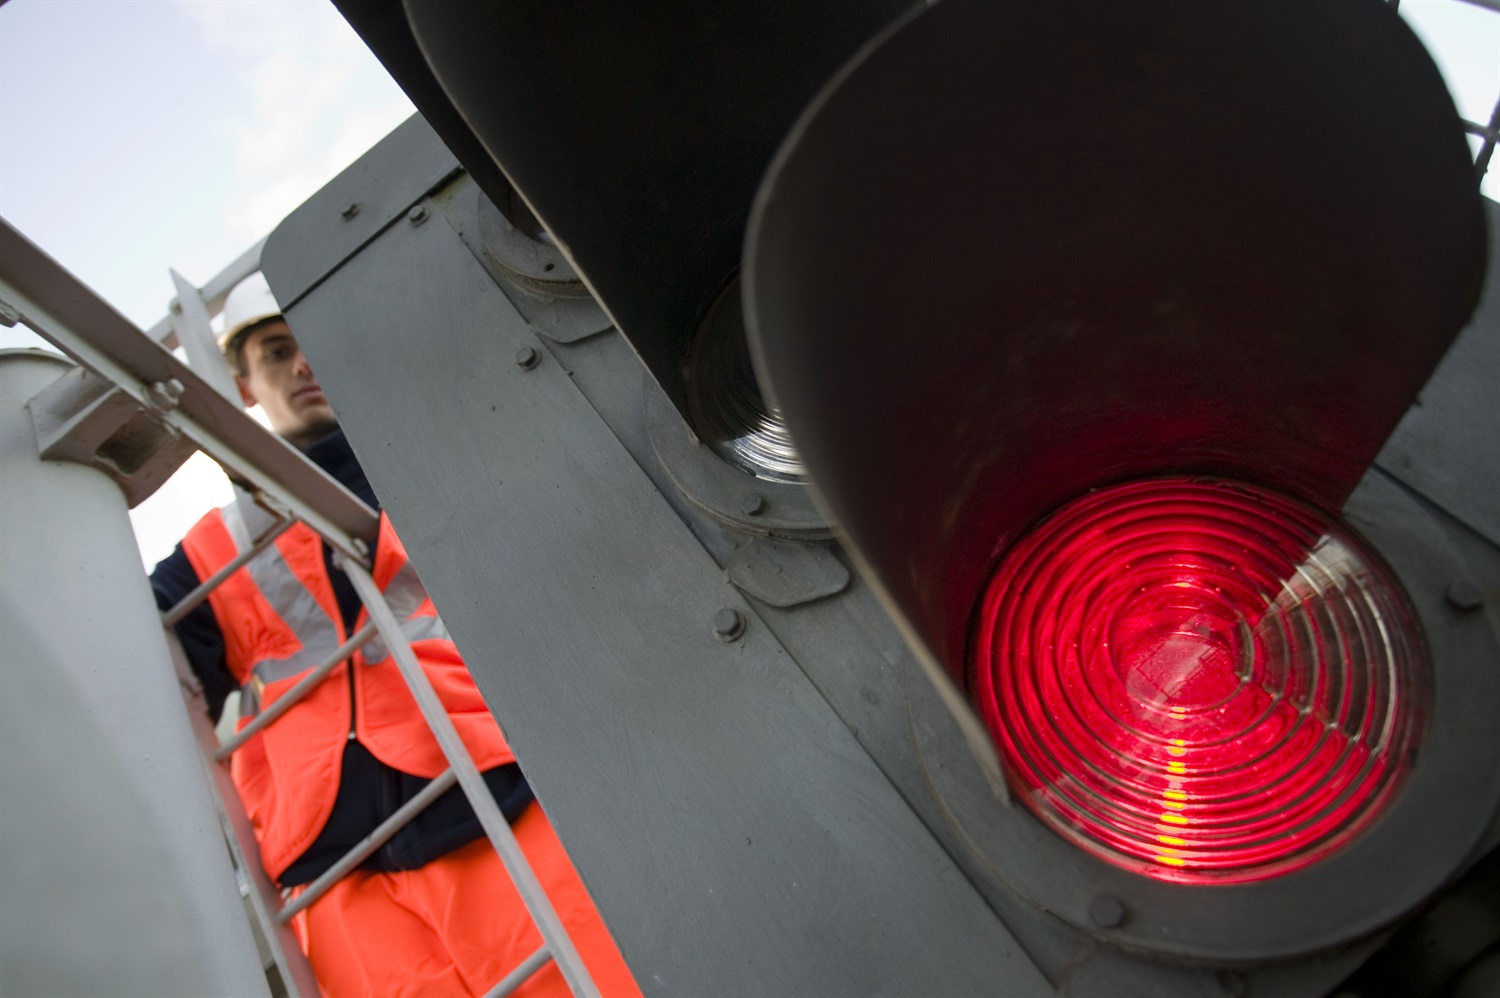 Atkins awarded £29m deal for innovative Anglia re-signalling programme